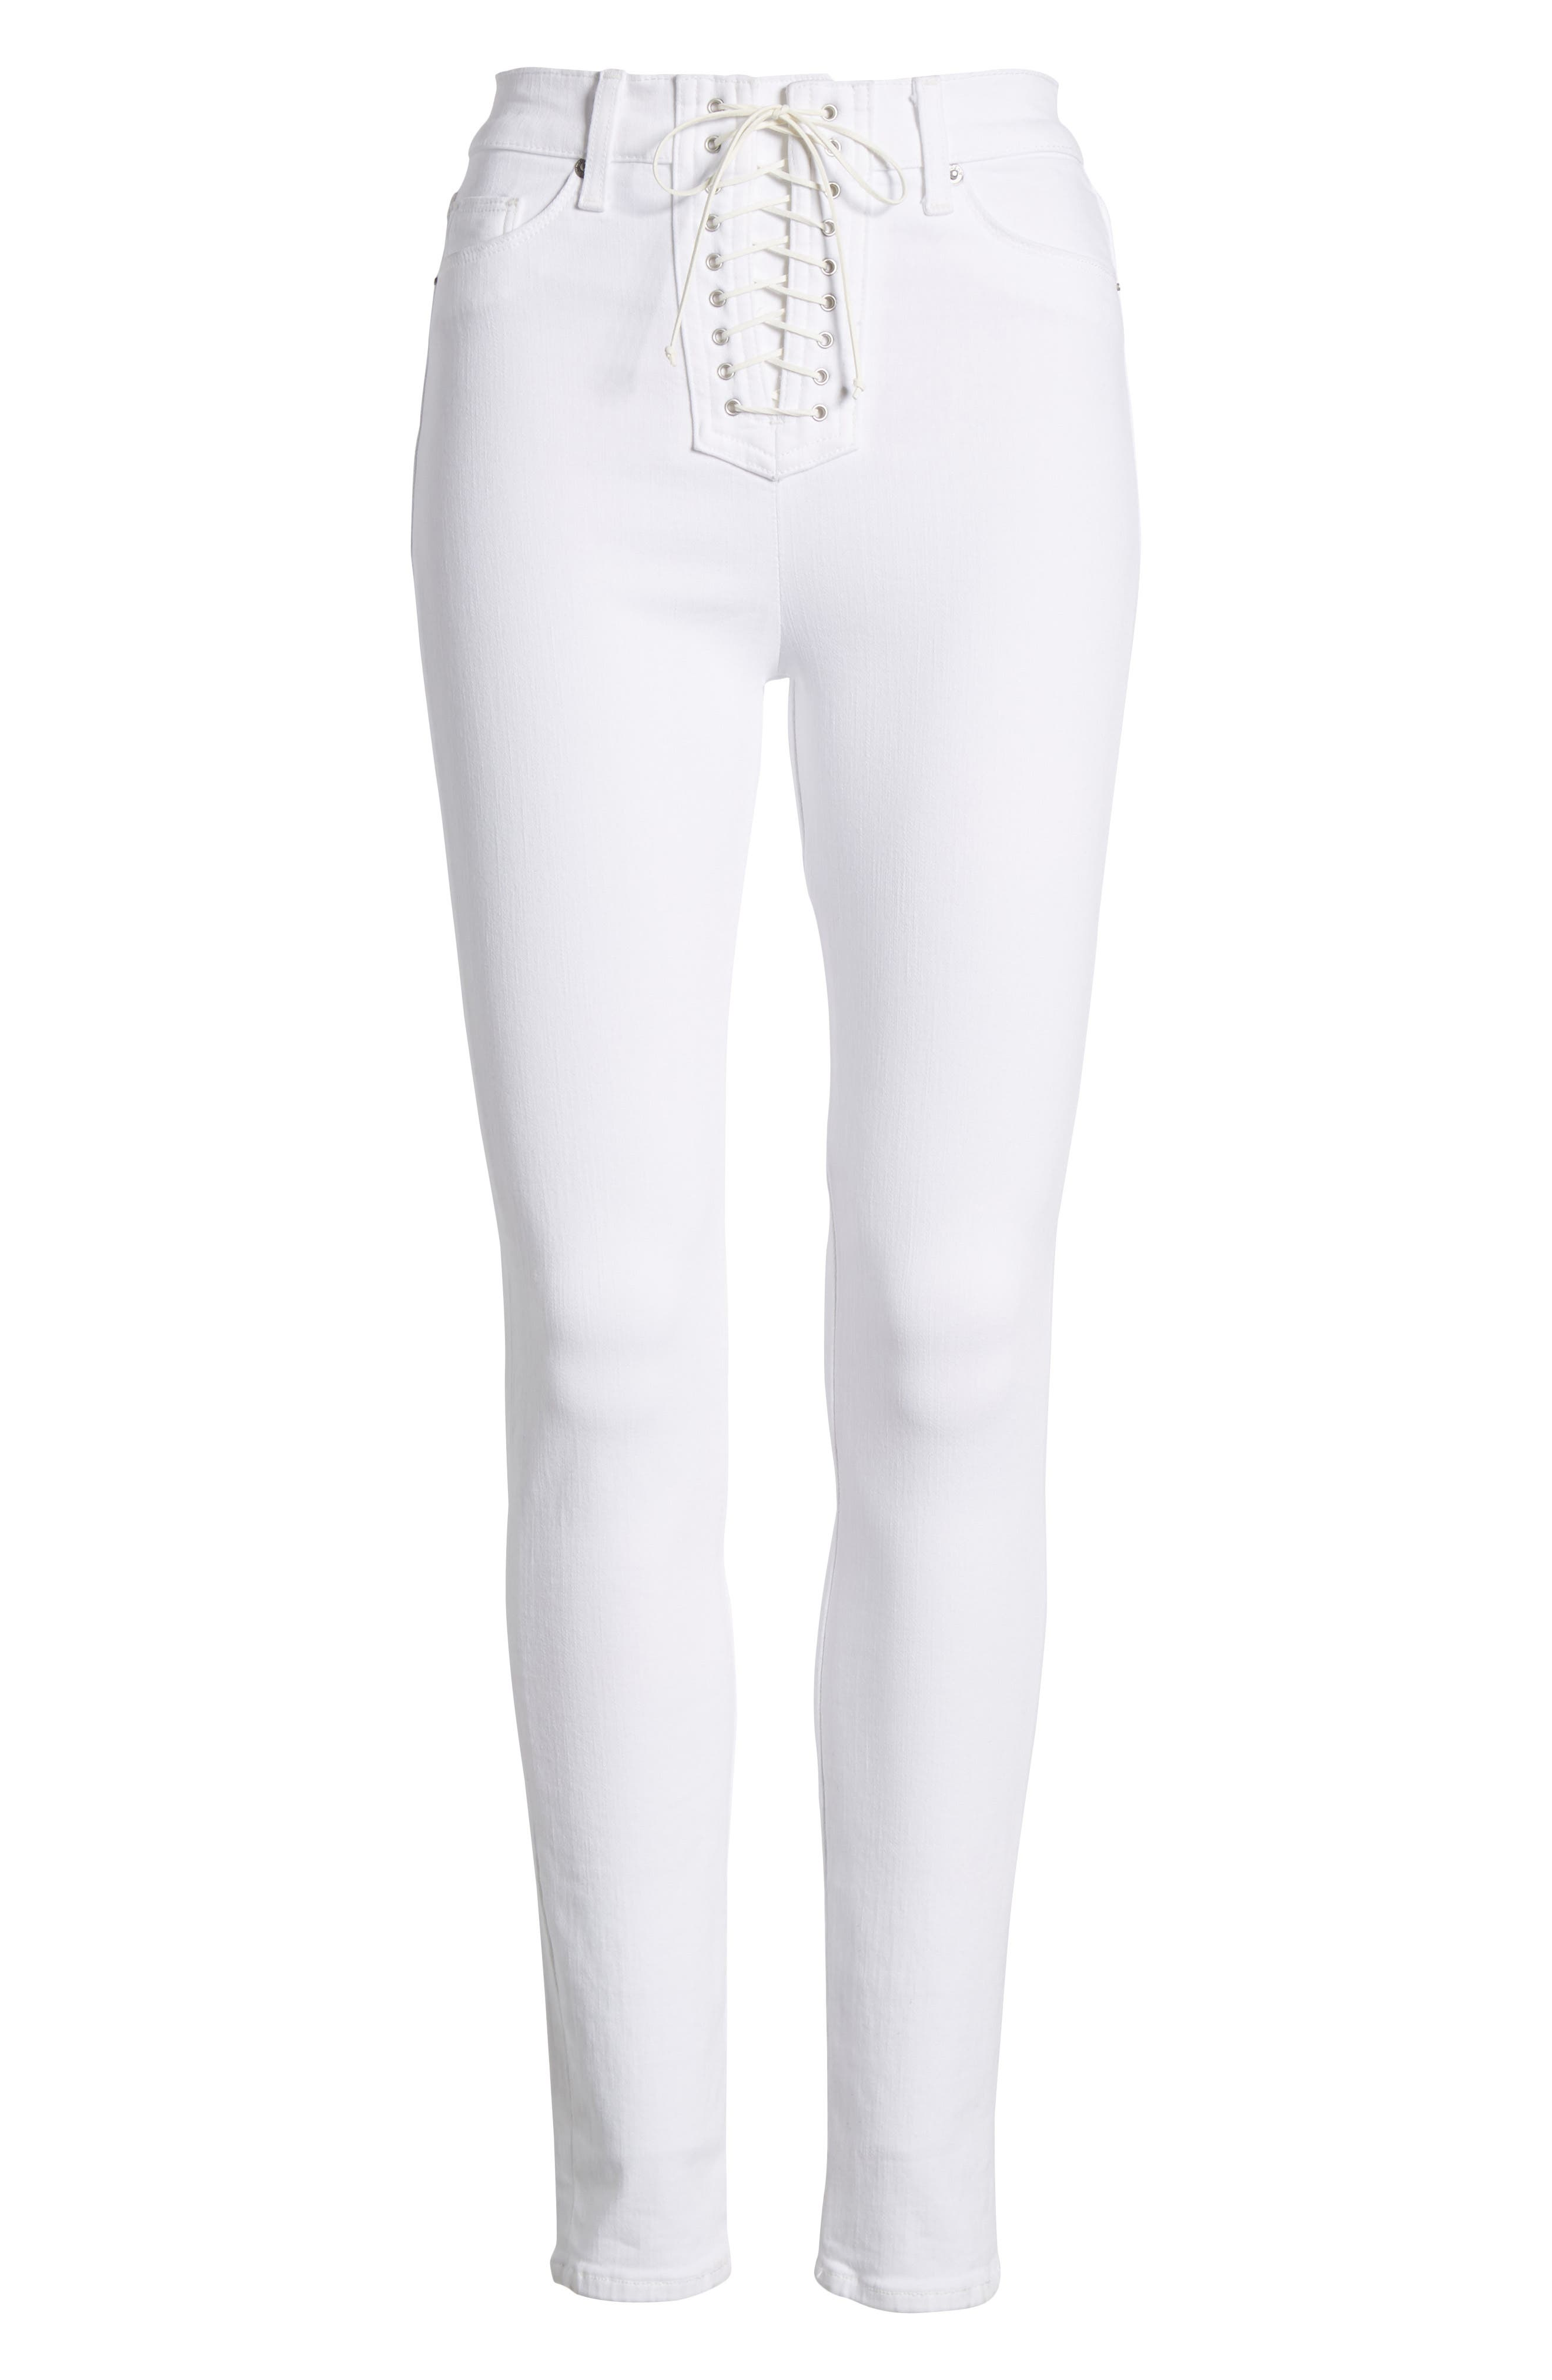 Bullocks Lace-Up High Waist Super Skinny Jeans,                             Alternate thumbnail 6, color,                             Optical White